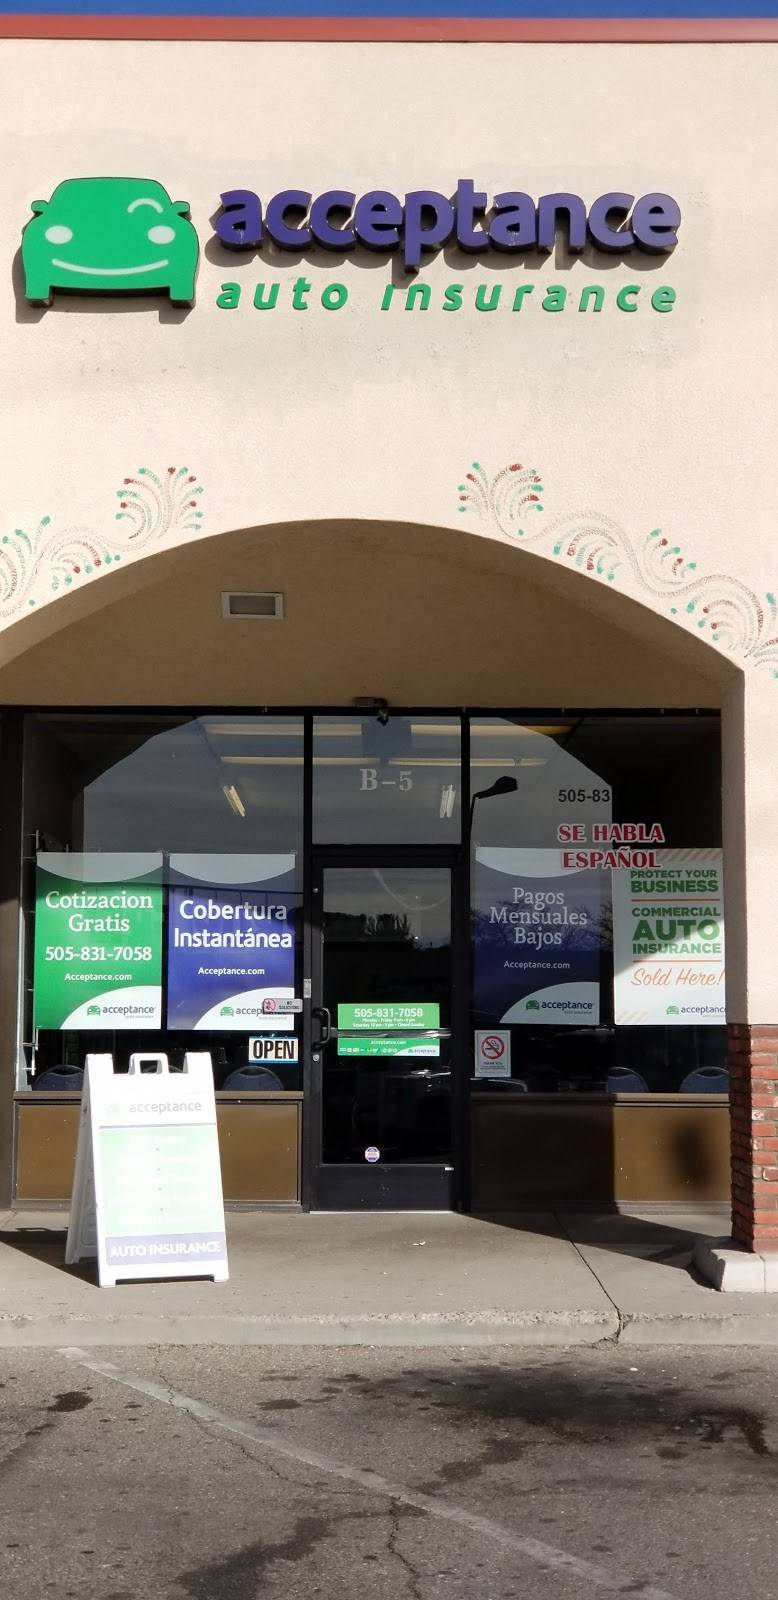 Acceptance Insurance - insurance agency  | Photo 1 of 3 | Address: 4201 Central Ave NW Ste B-5, Albuquerque, NM 87105, USA | Phone: (505) 831-7058